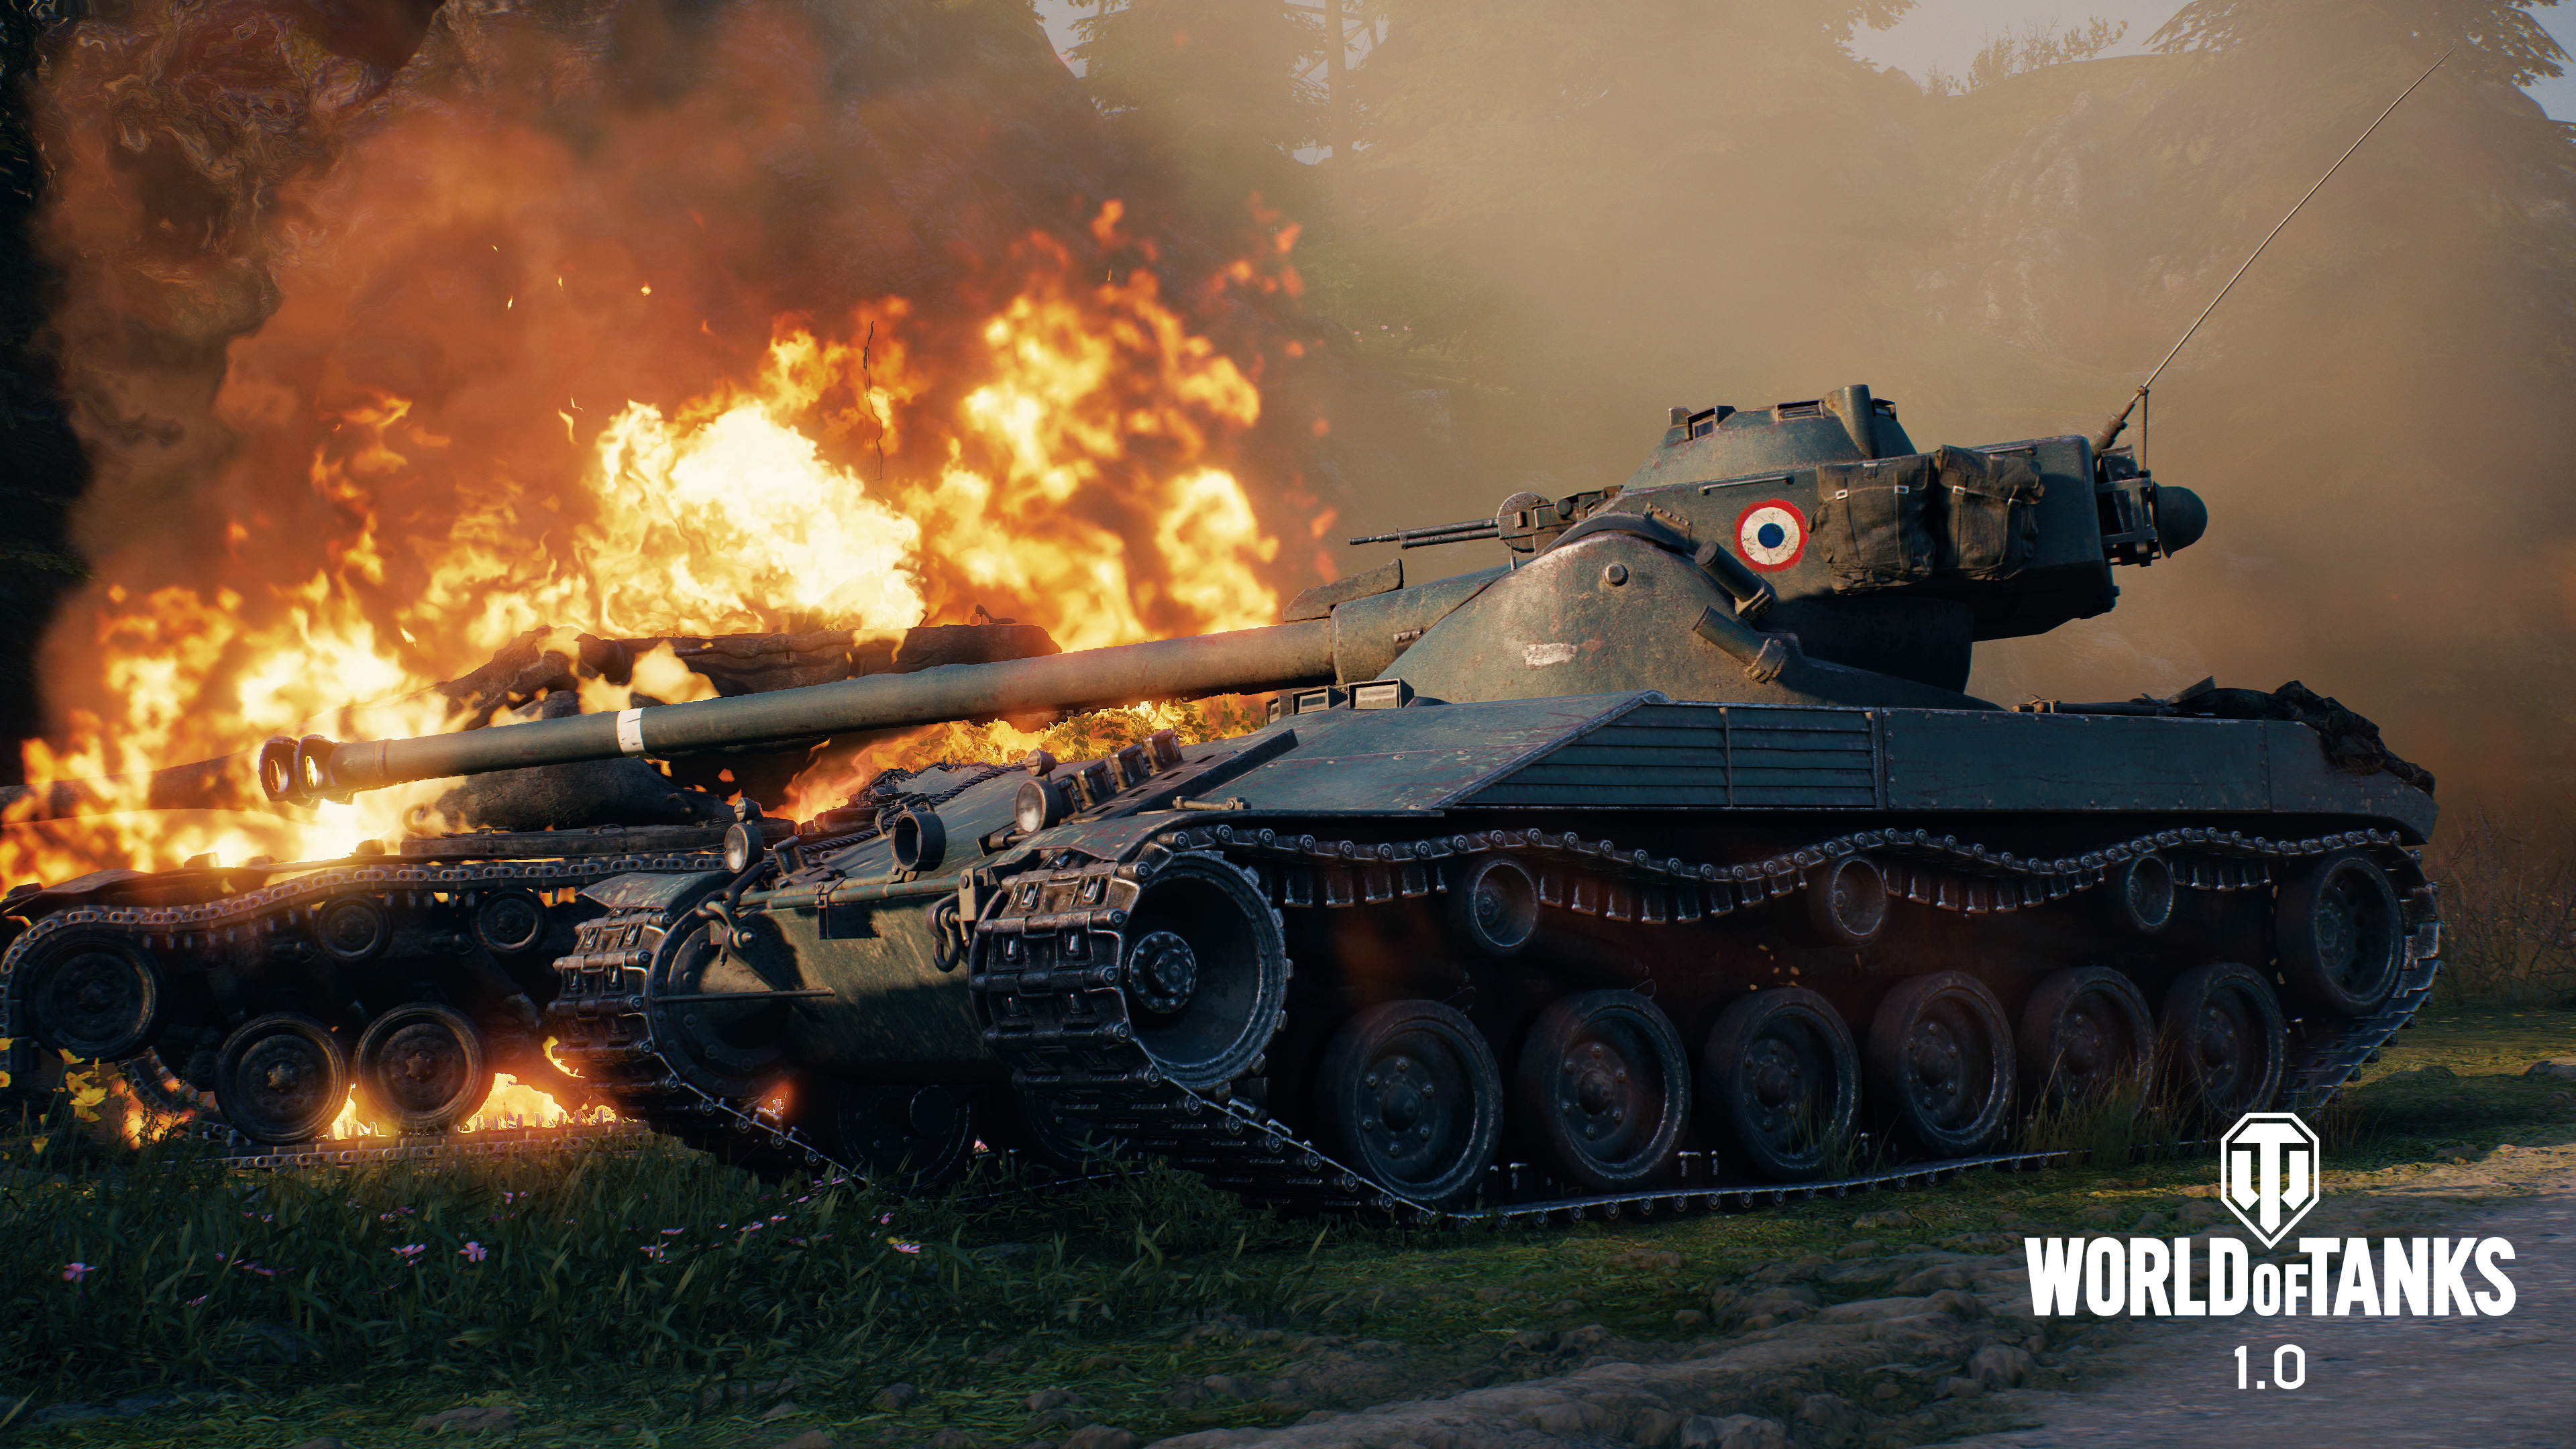 World of Tanks gets first major face-lift in 8 years